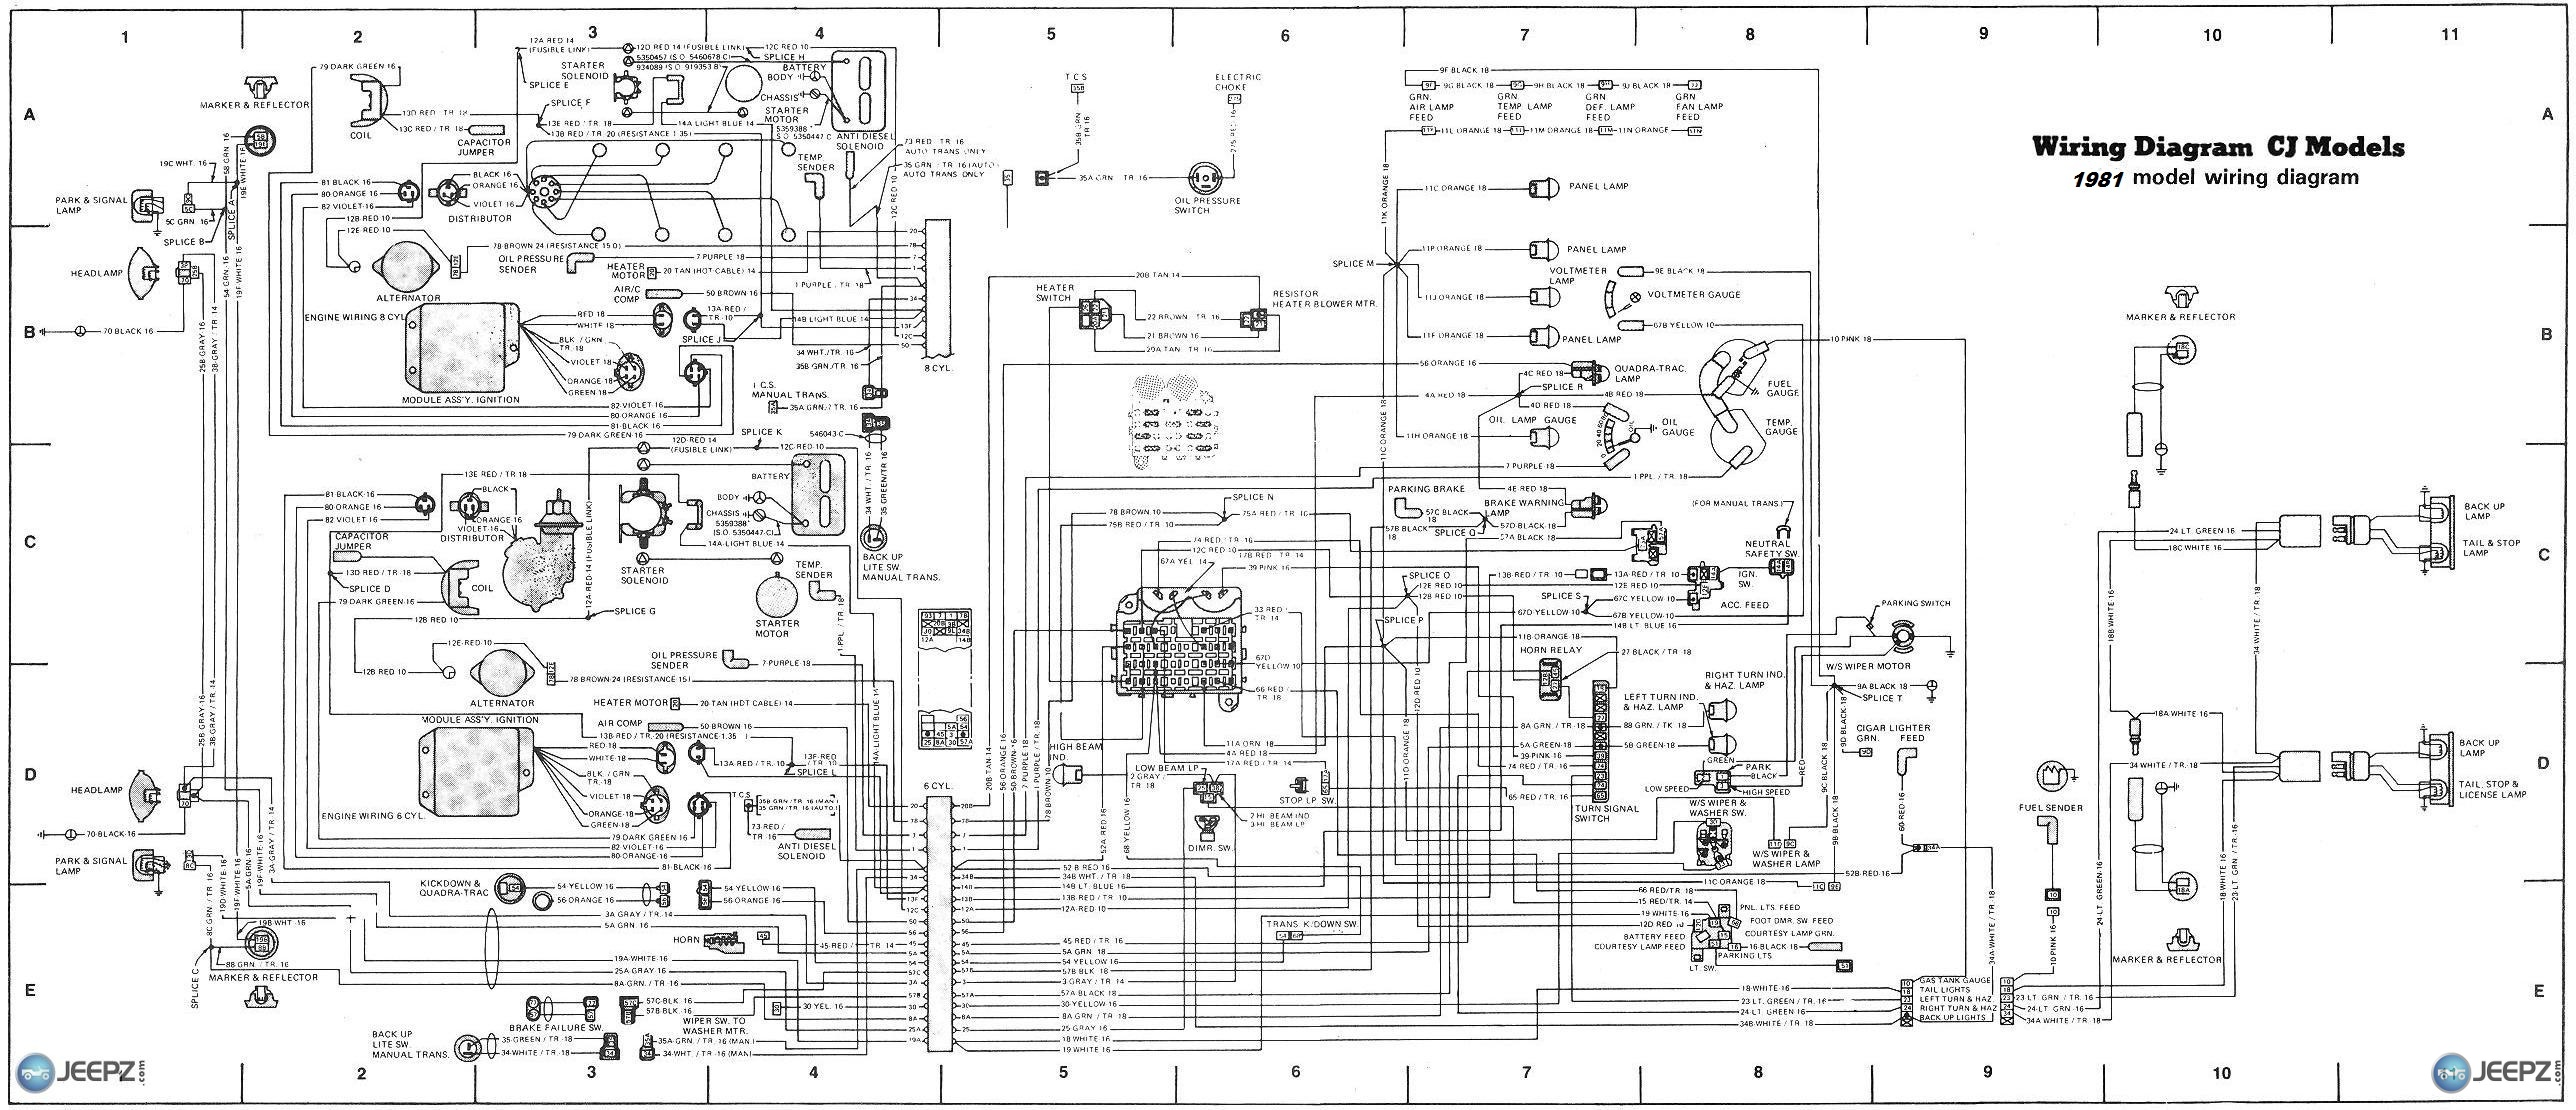 7993d1301845049 cj 7 wire diagram cj wiring diagram 1981 cj 7 wire diagram cj7 wiring diagram at gsmx.co